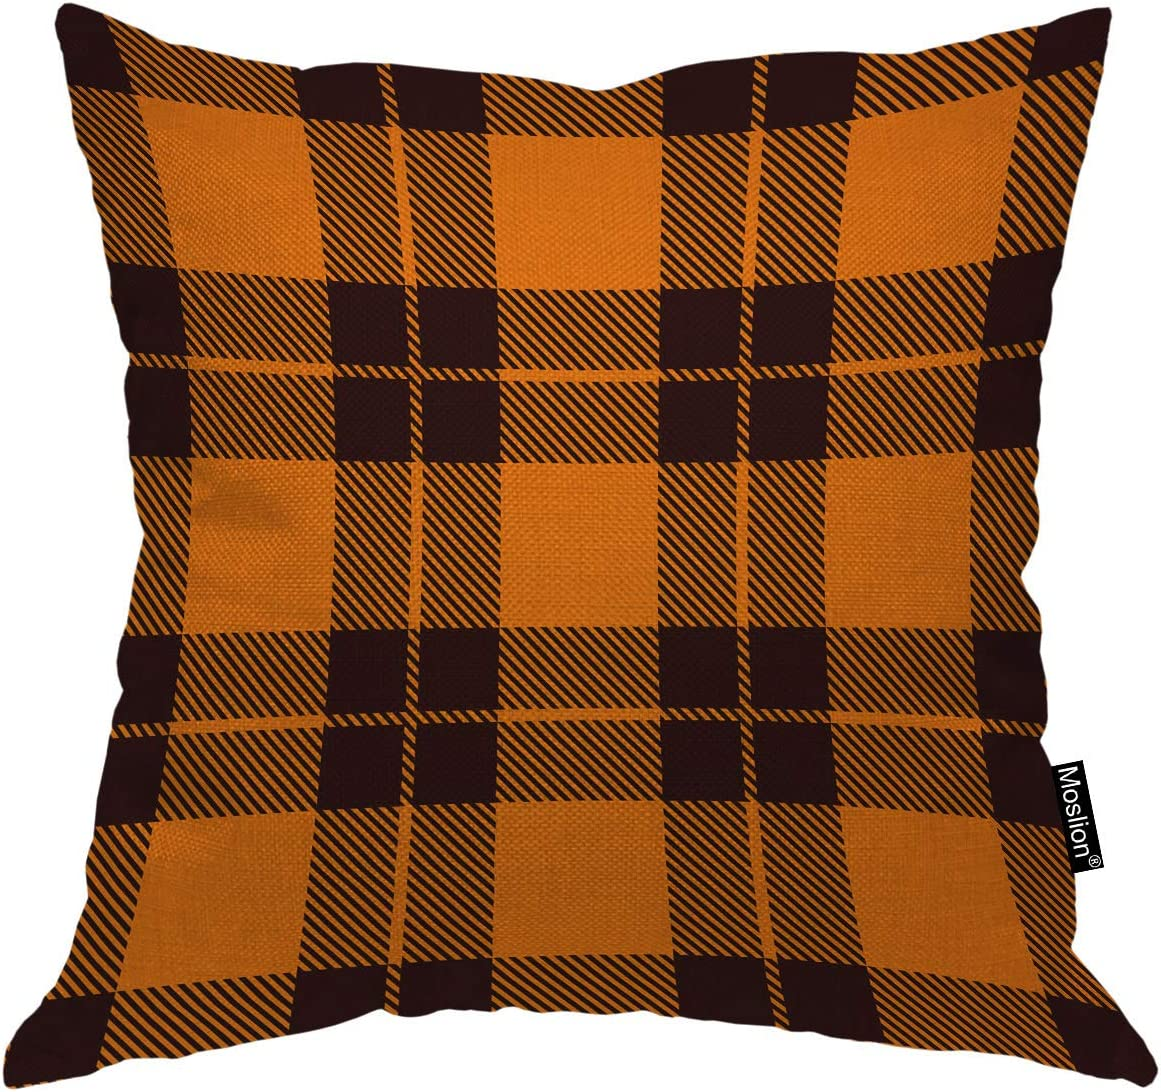 Moslion Orange and Black Buffalo Throw Pillow Covers Halloween Classic Retro Checkers Plaid Fall Design Throw Pillow Cases for Home Decor Halloween Thanksgiving Cushion Cover Cotton Linen 18x18 inch